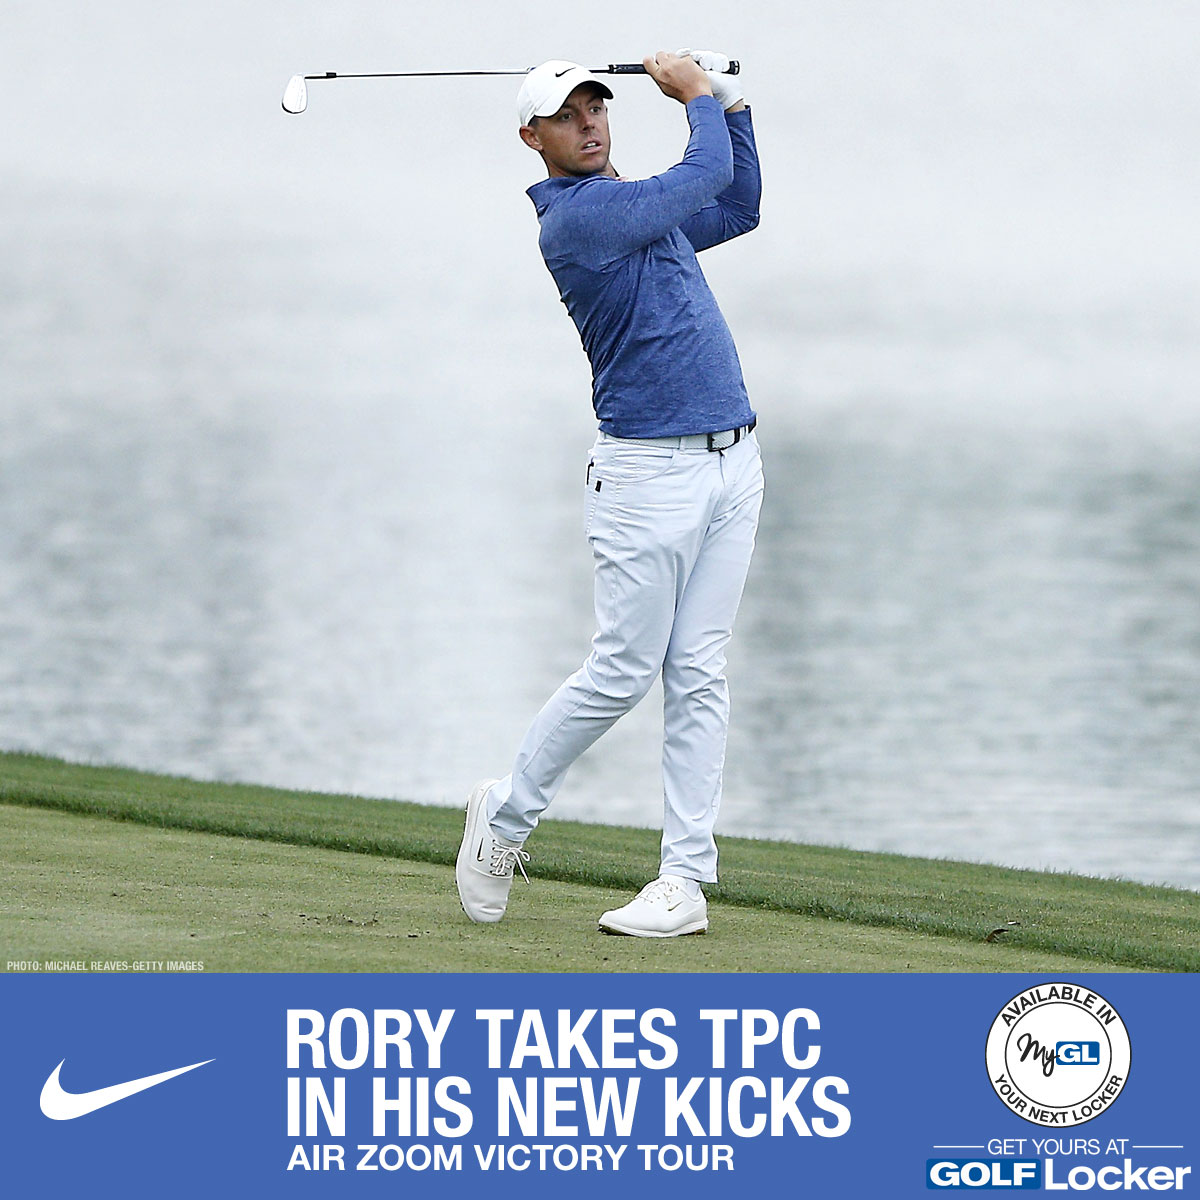 Rory takes TPC in his new Nike Air Zoom Victory Tour